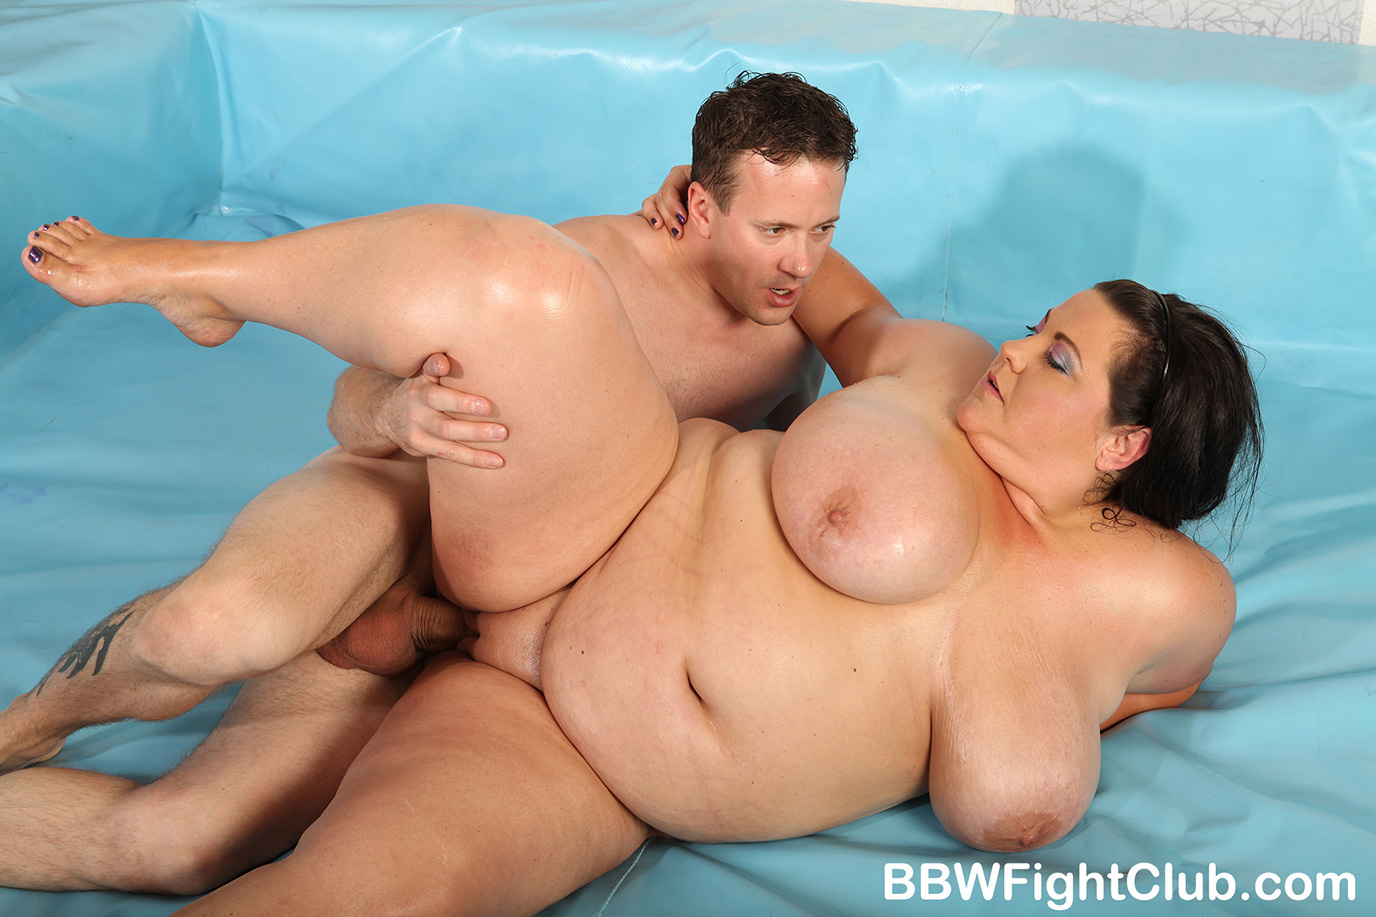 Bbw fight club presents semifinal wrestlers leny and kristy 9